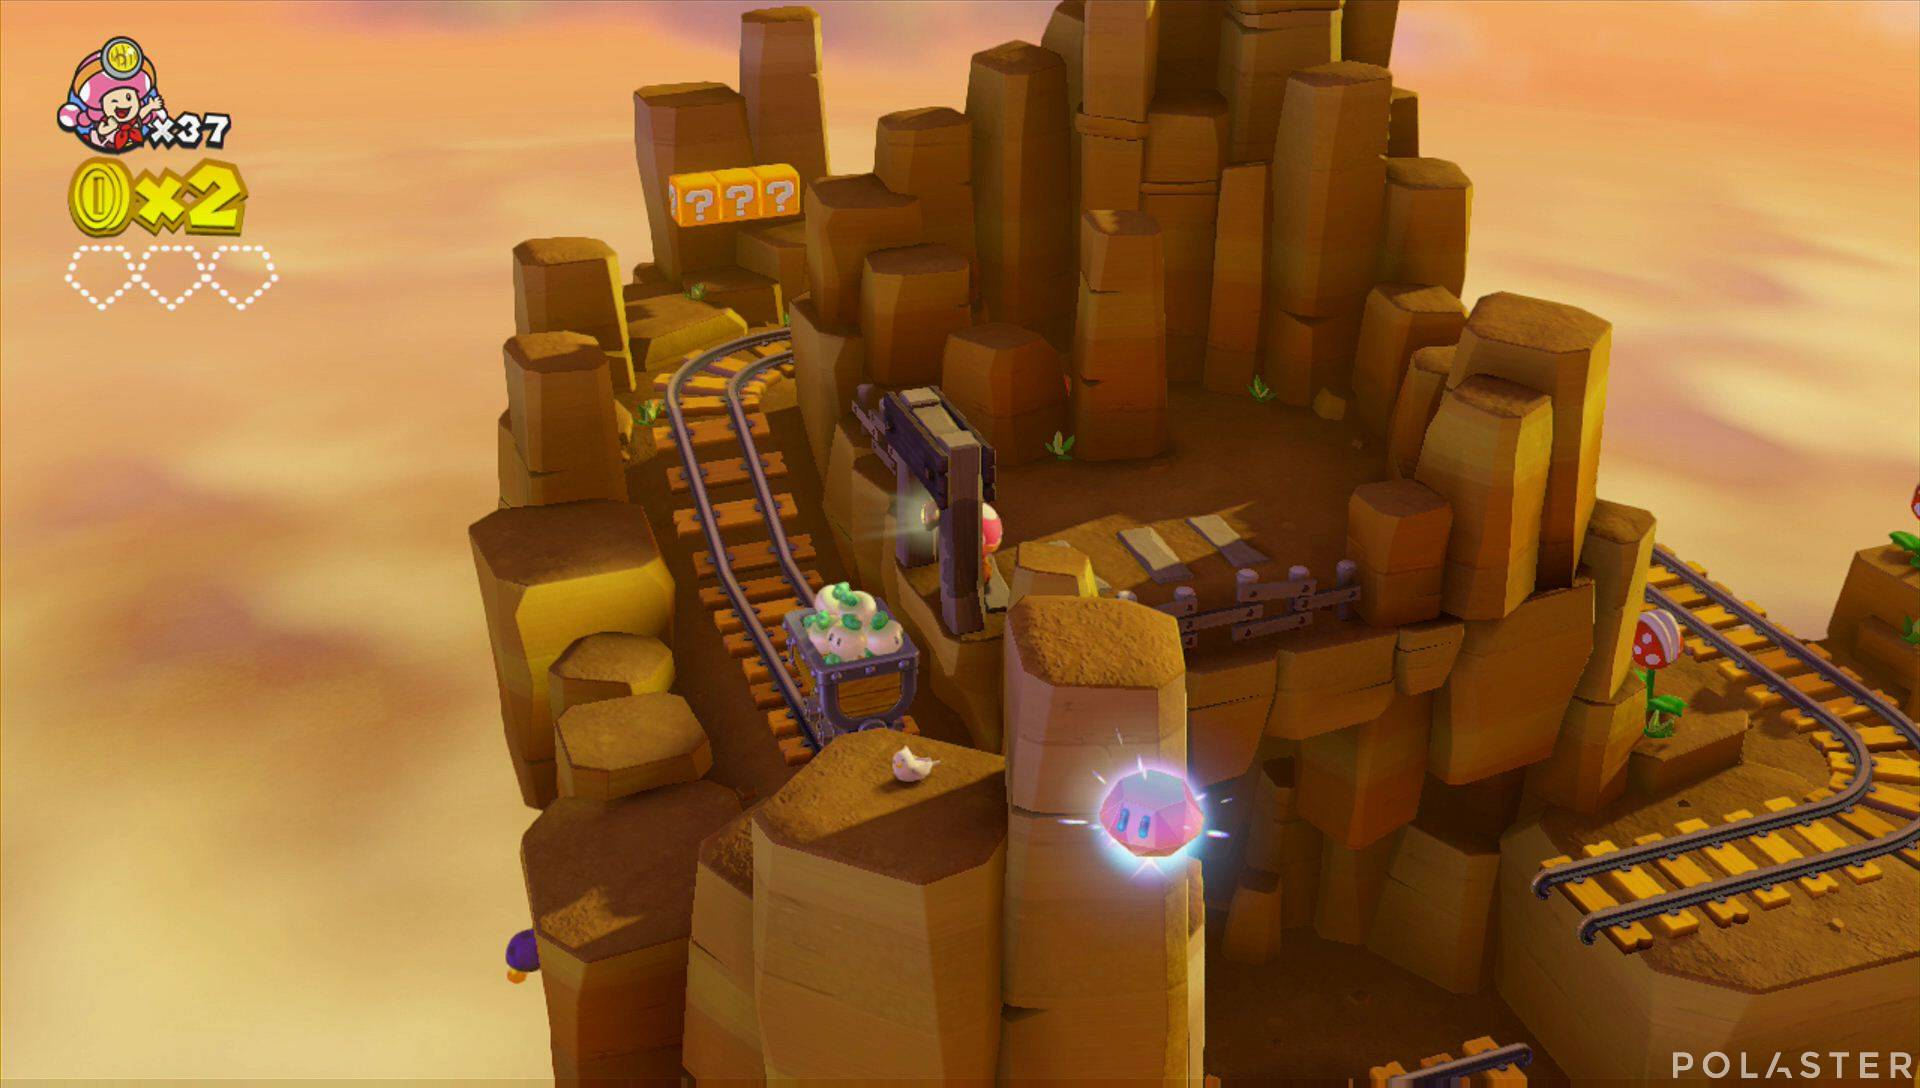 Captain Toad: Treasure Tracker Parte 2 Nivel 3 Superdiamante 1